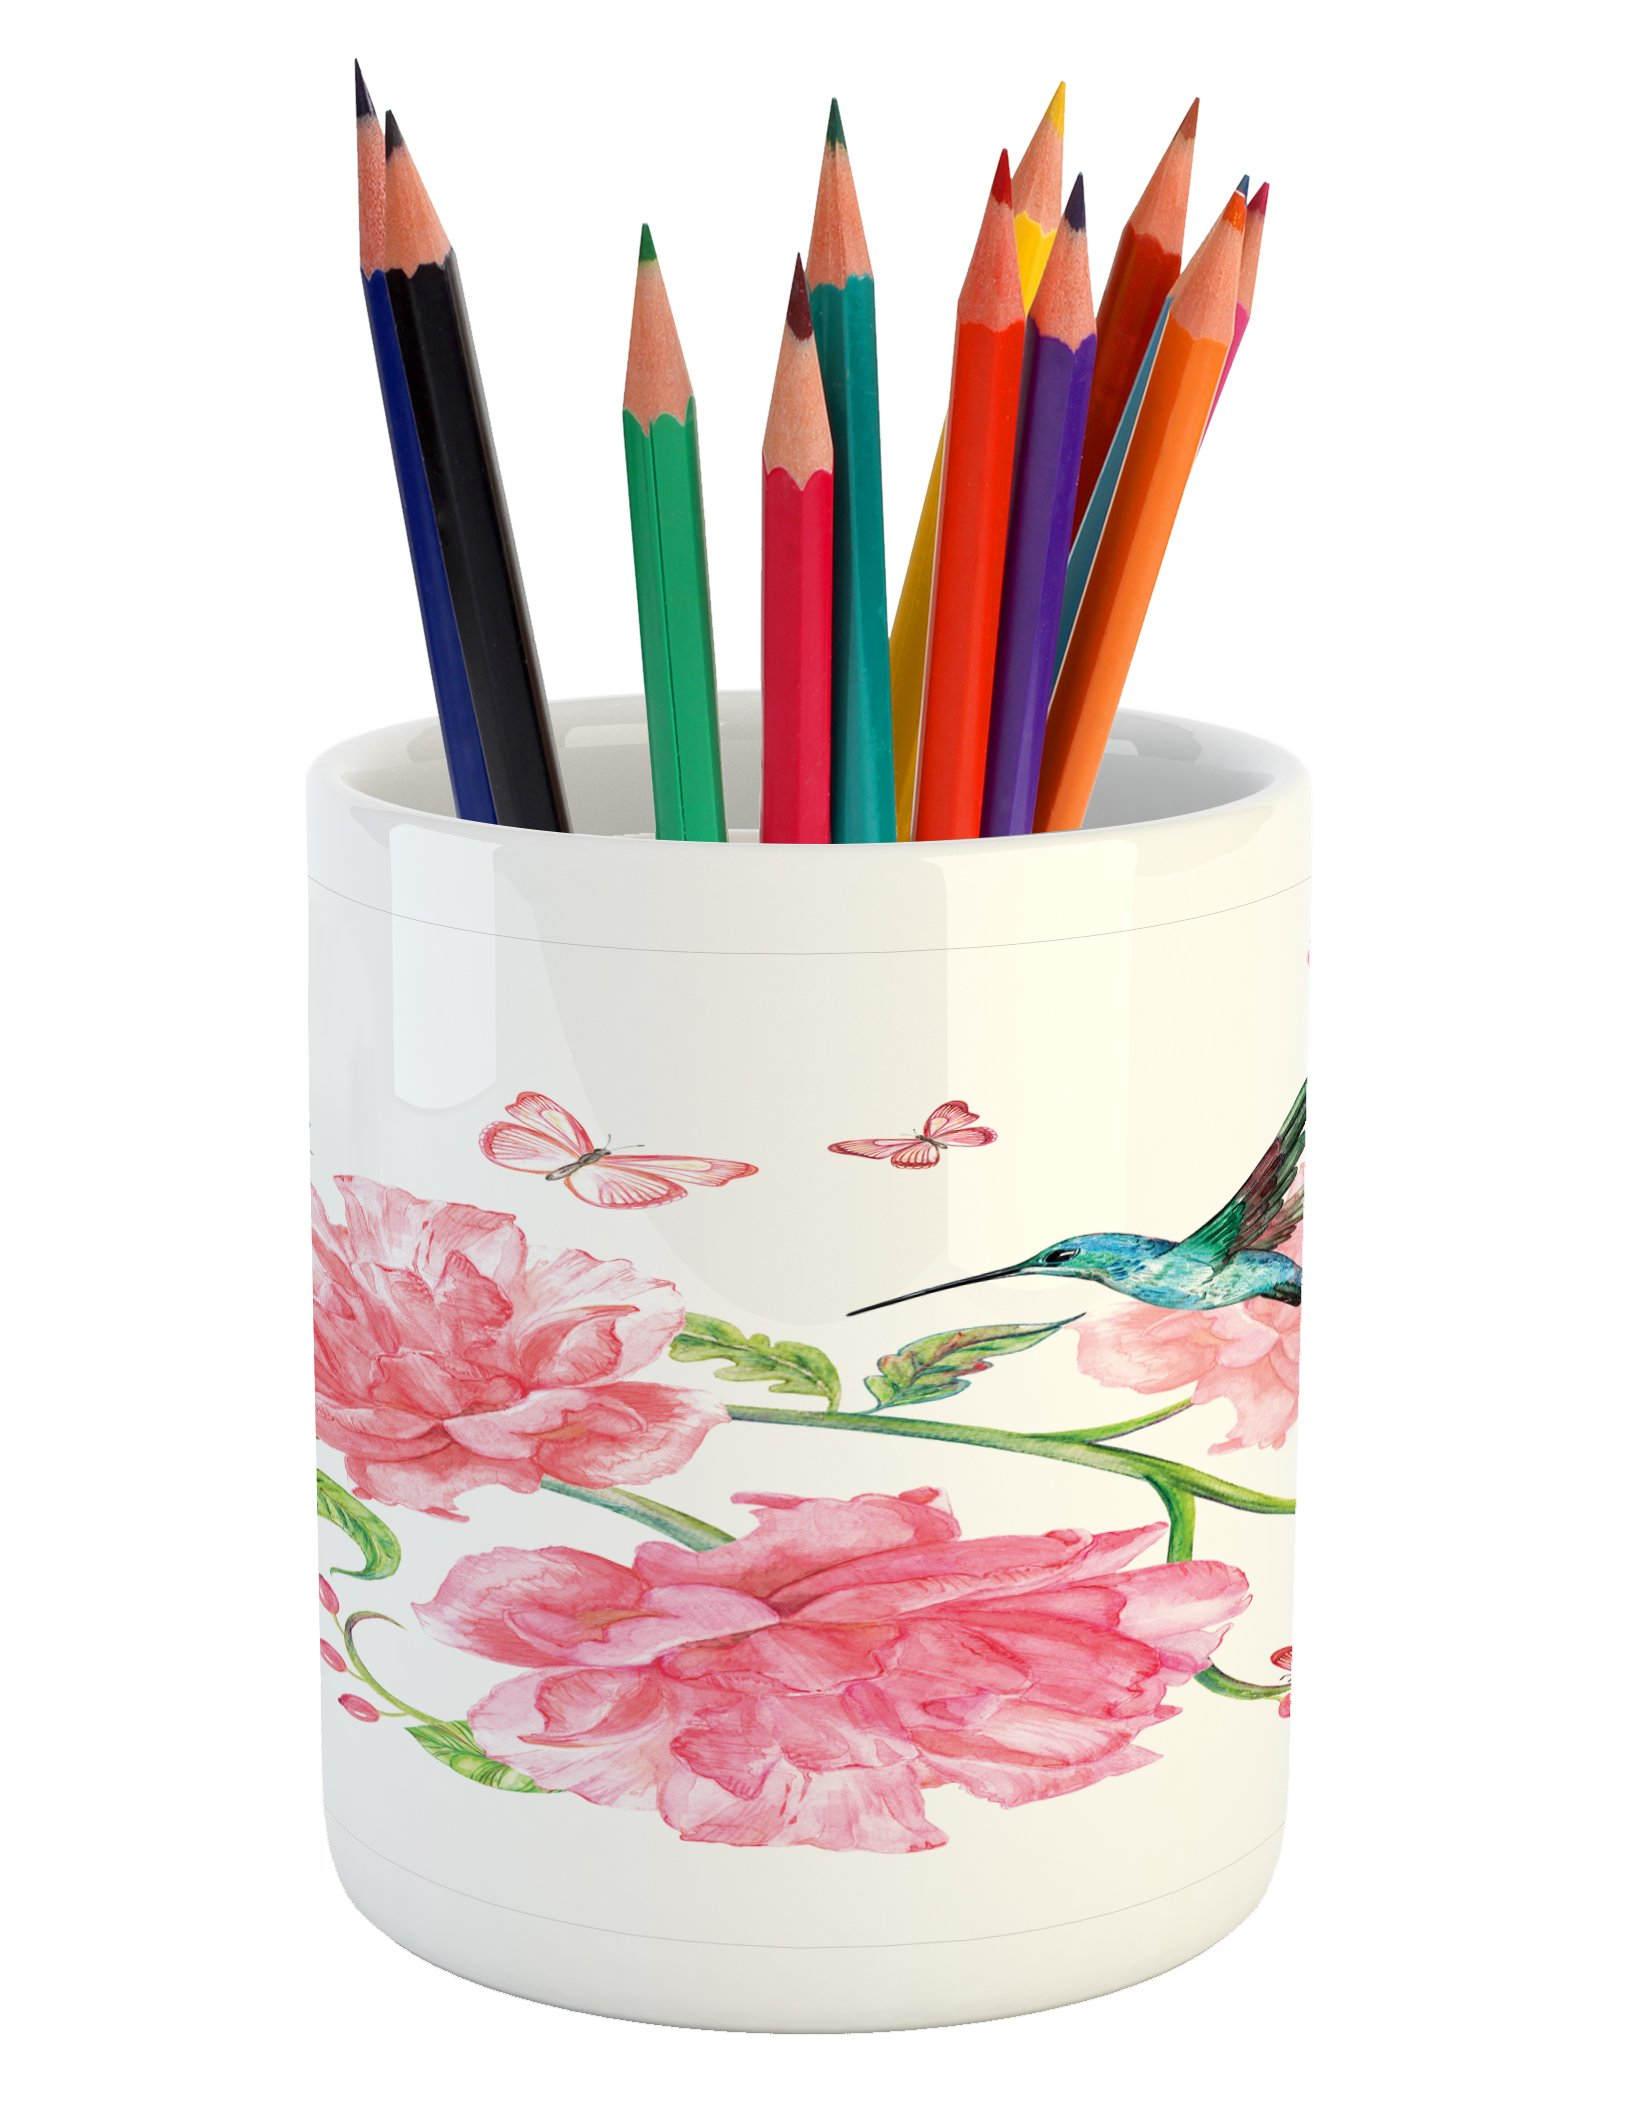 Lunarable Hummingbird Pencil Pen Holder, Vintage Watercolor Illustration with Butterflies Birds and Flourishing Branch, Printed Ceramic Pencil Pen Holder for Desk Office Accessory, Multicolor